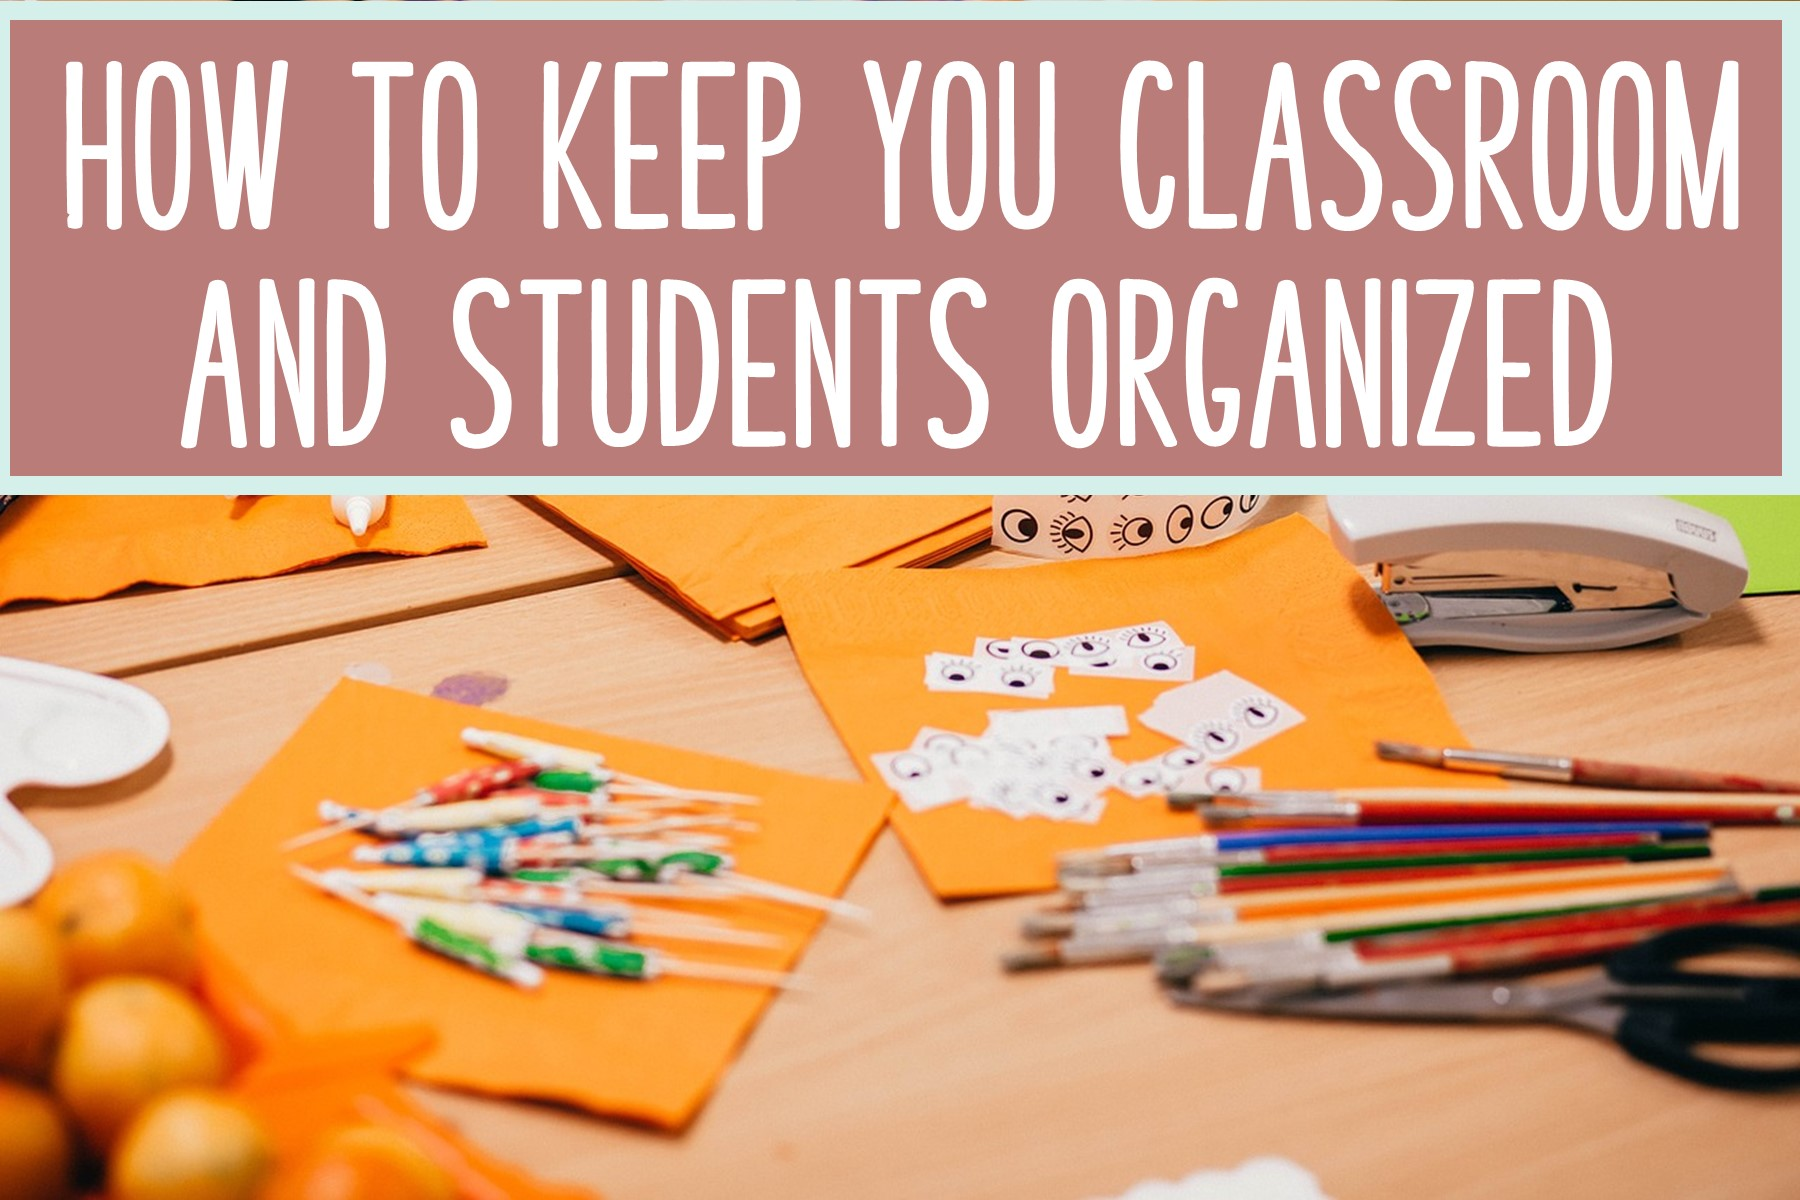 How to keep your classroom and students organized